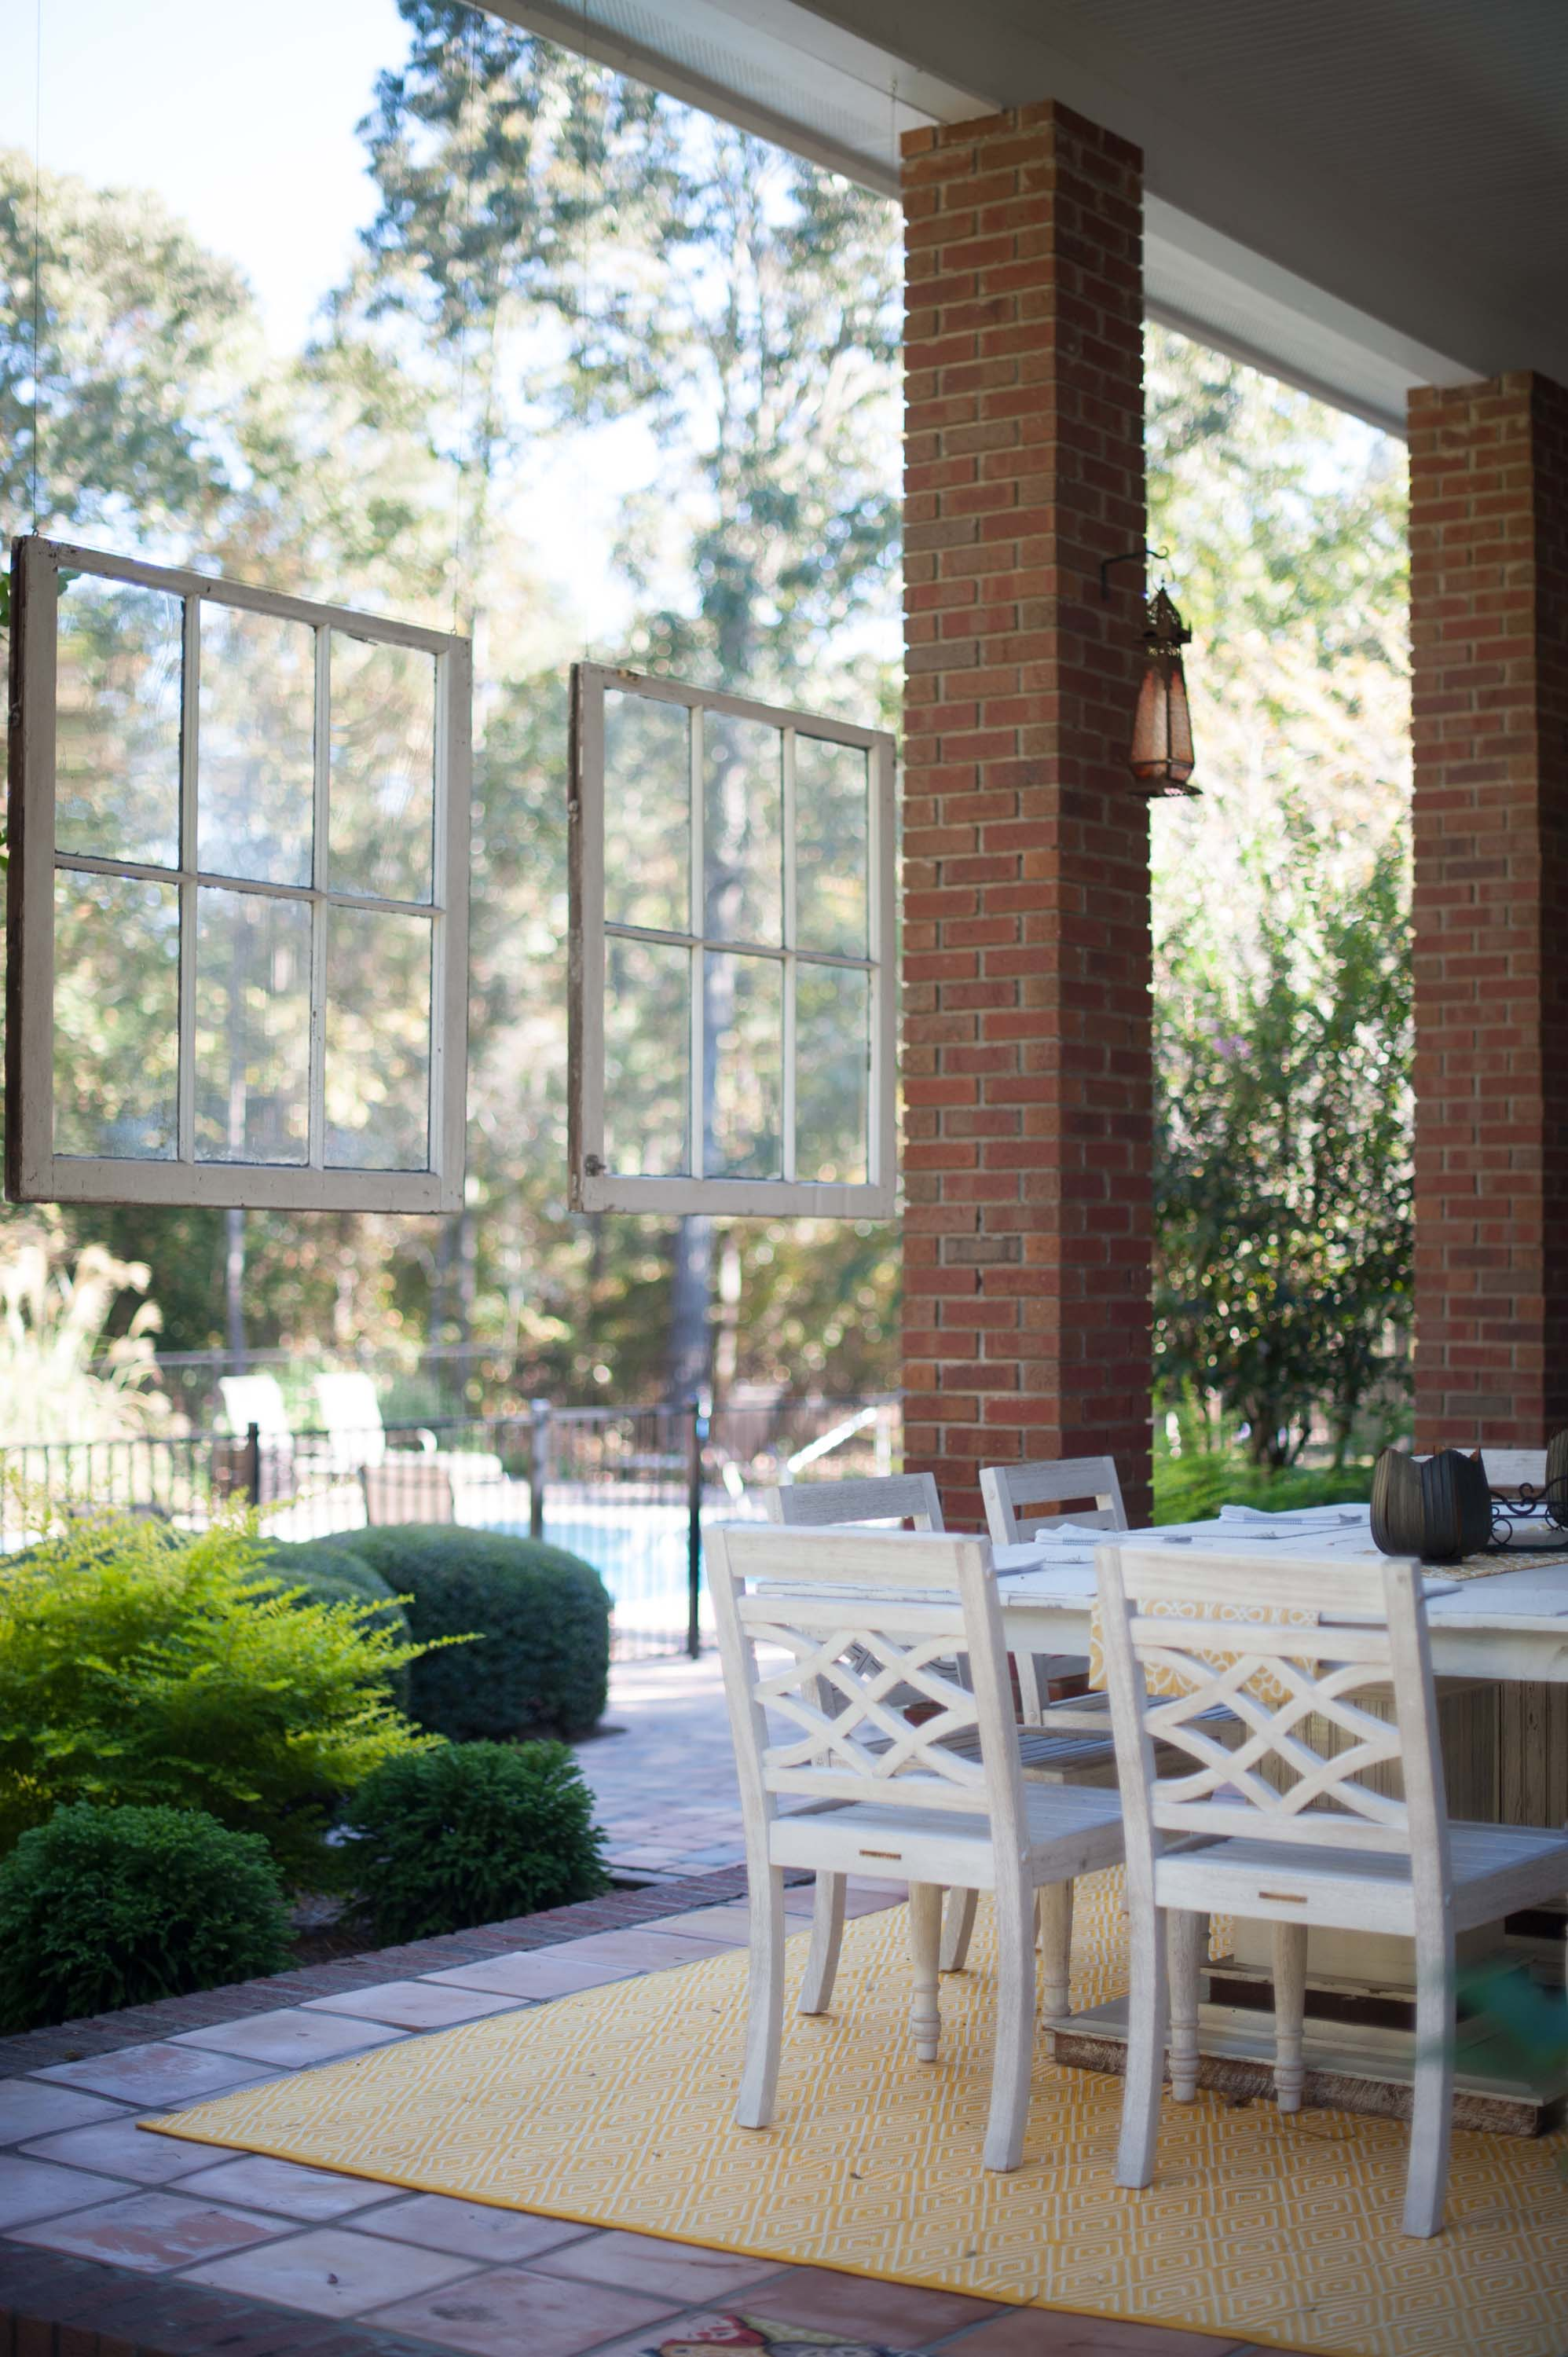 Outdoor patio with dining table and wooden chairs